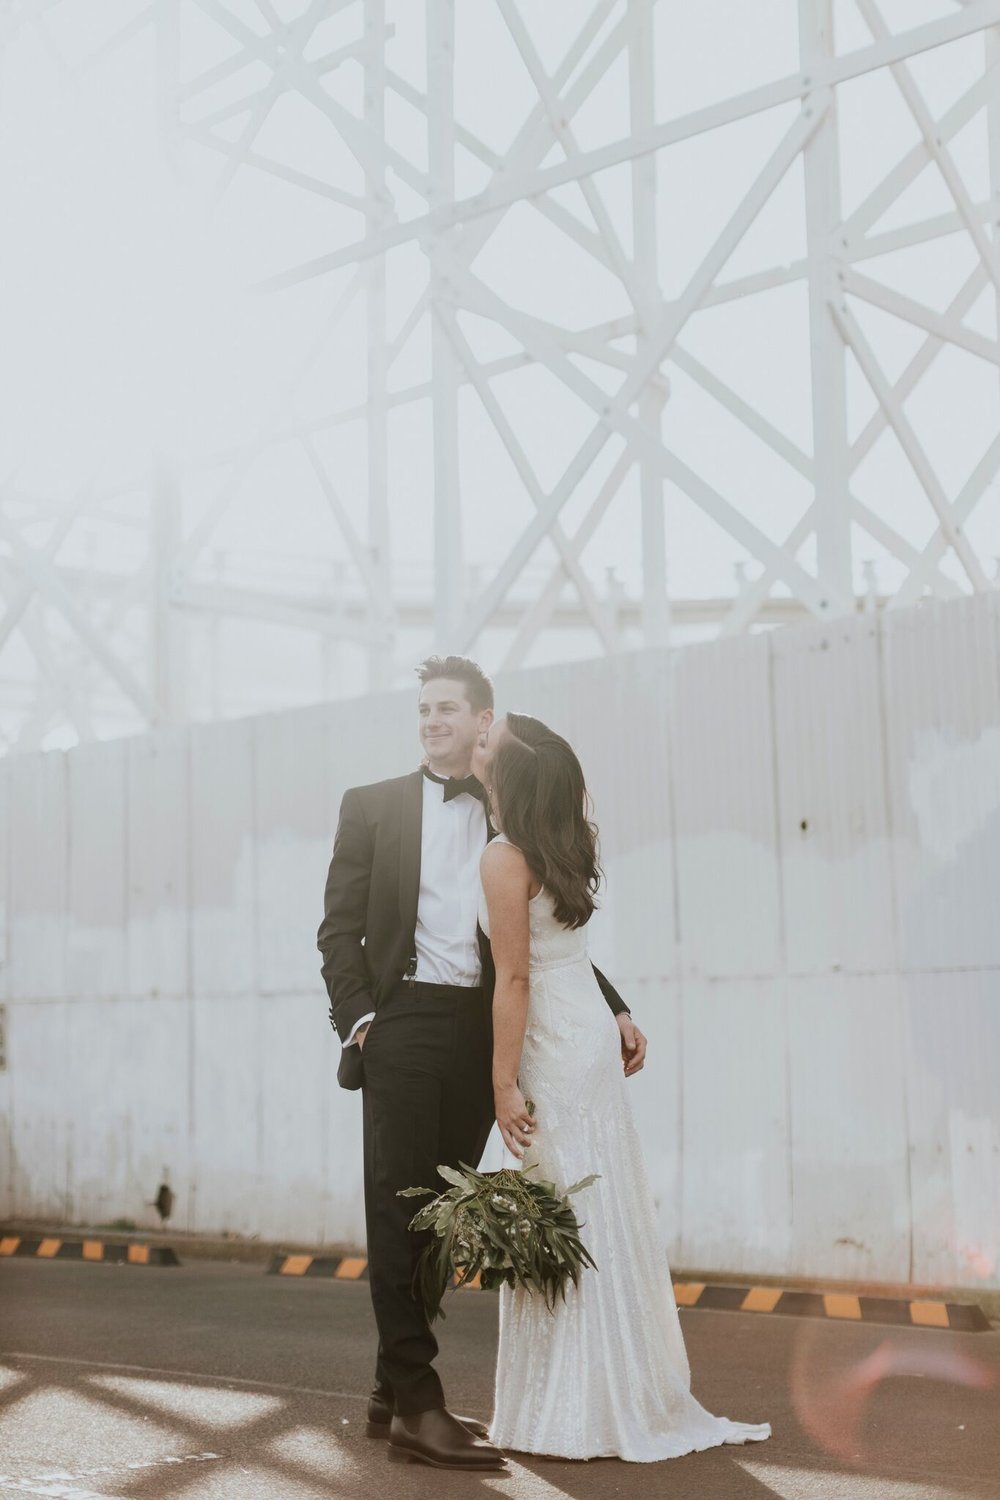 JOANNA+MATT-902_preview.jpg